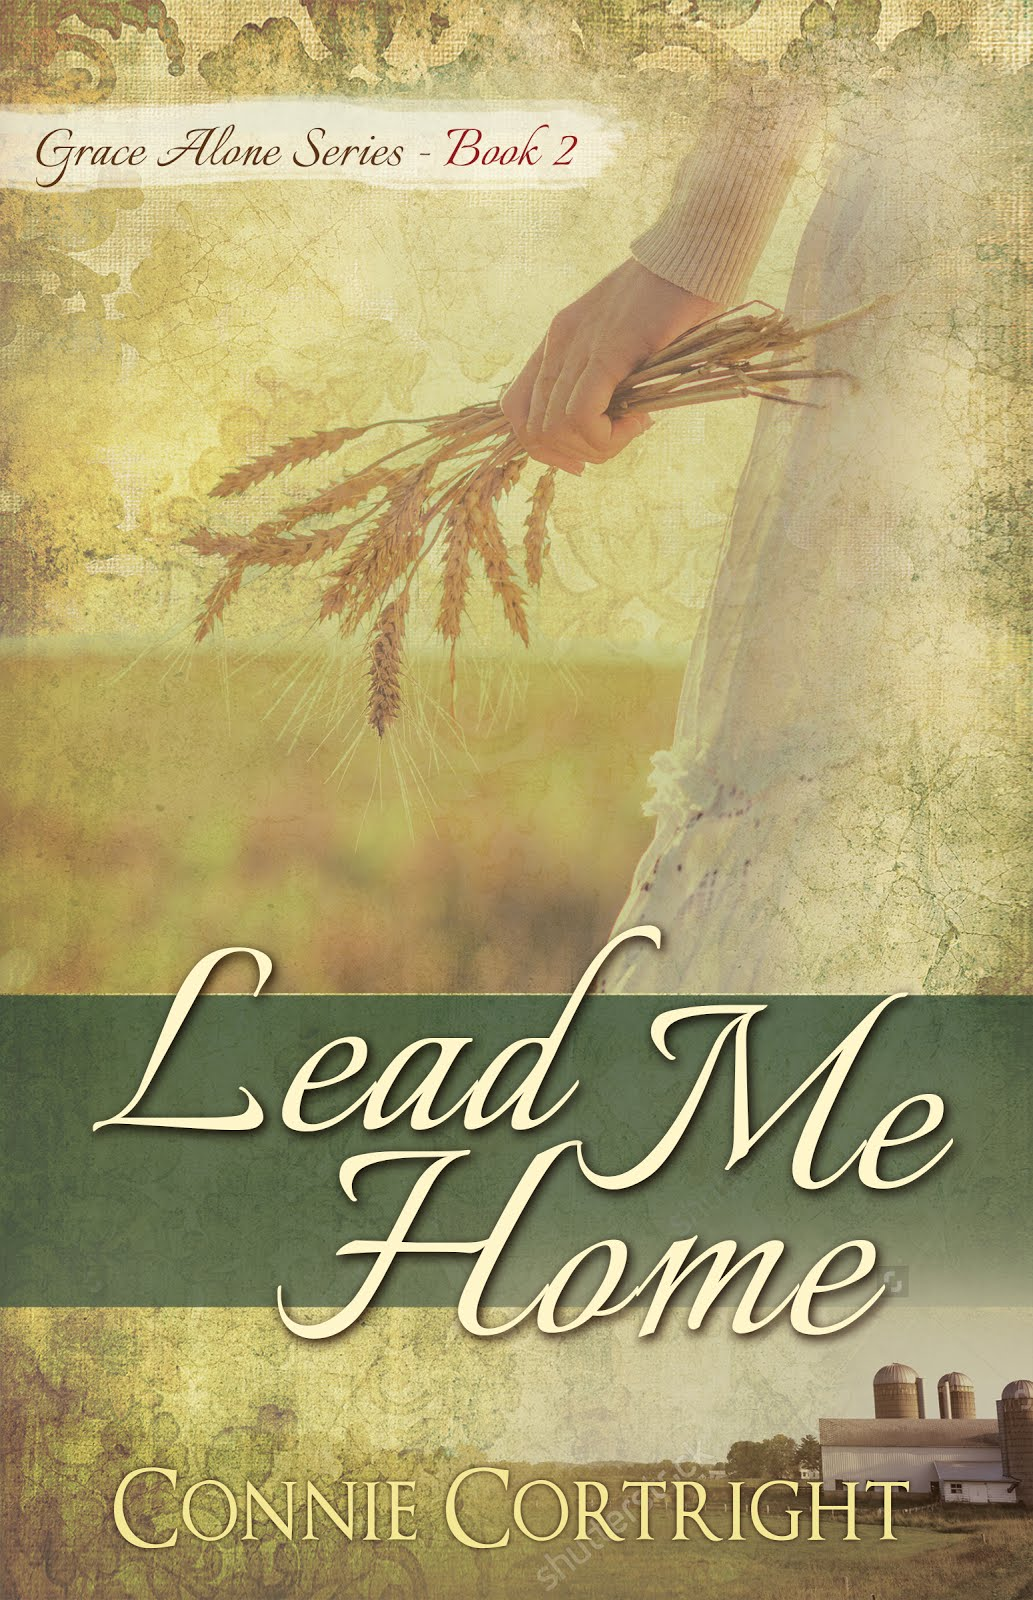 Lead Me Home is available on Amazon.com